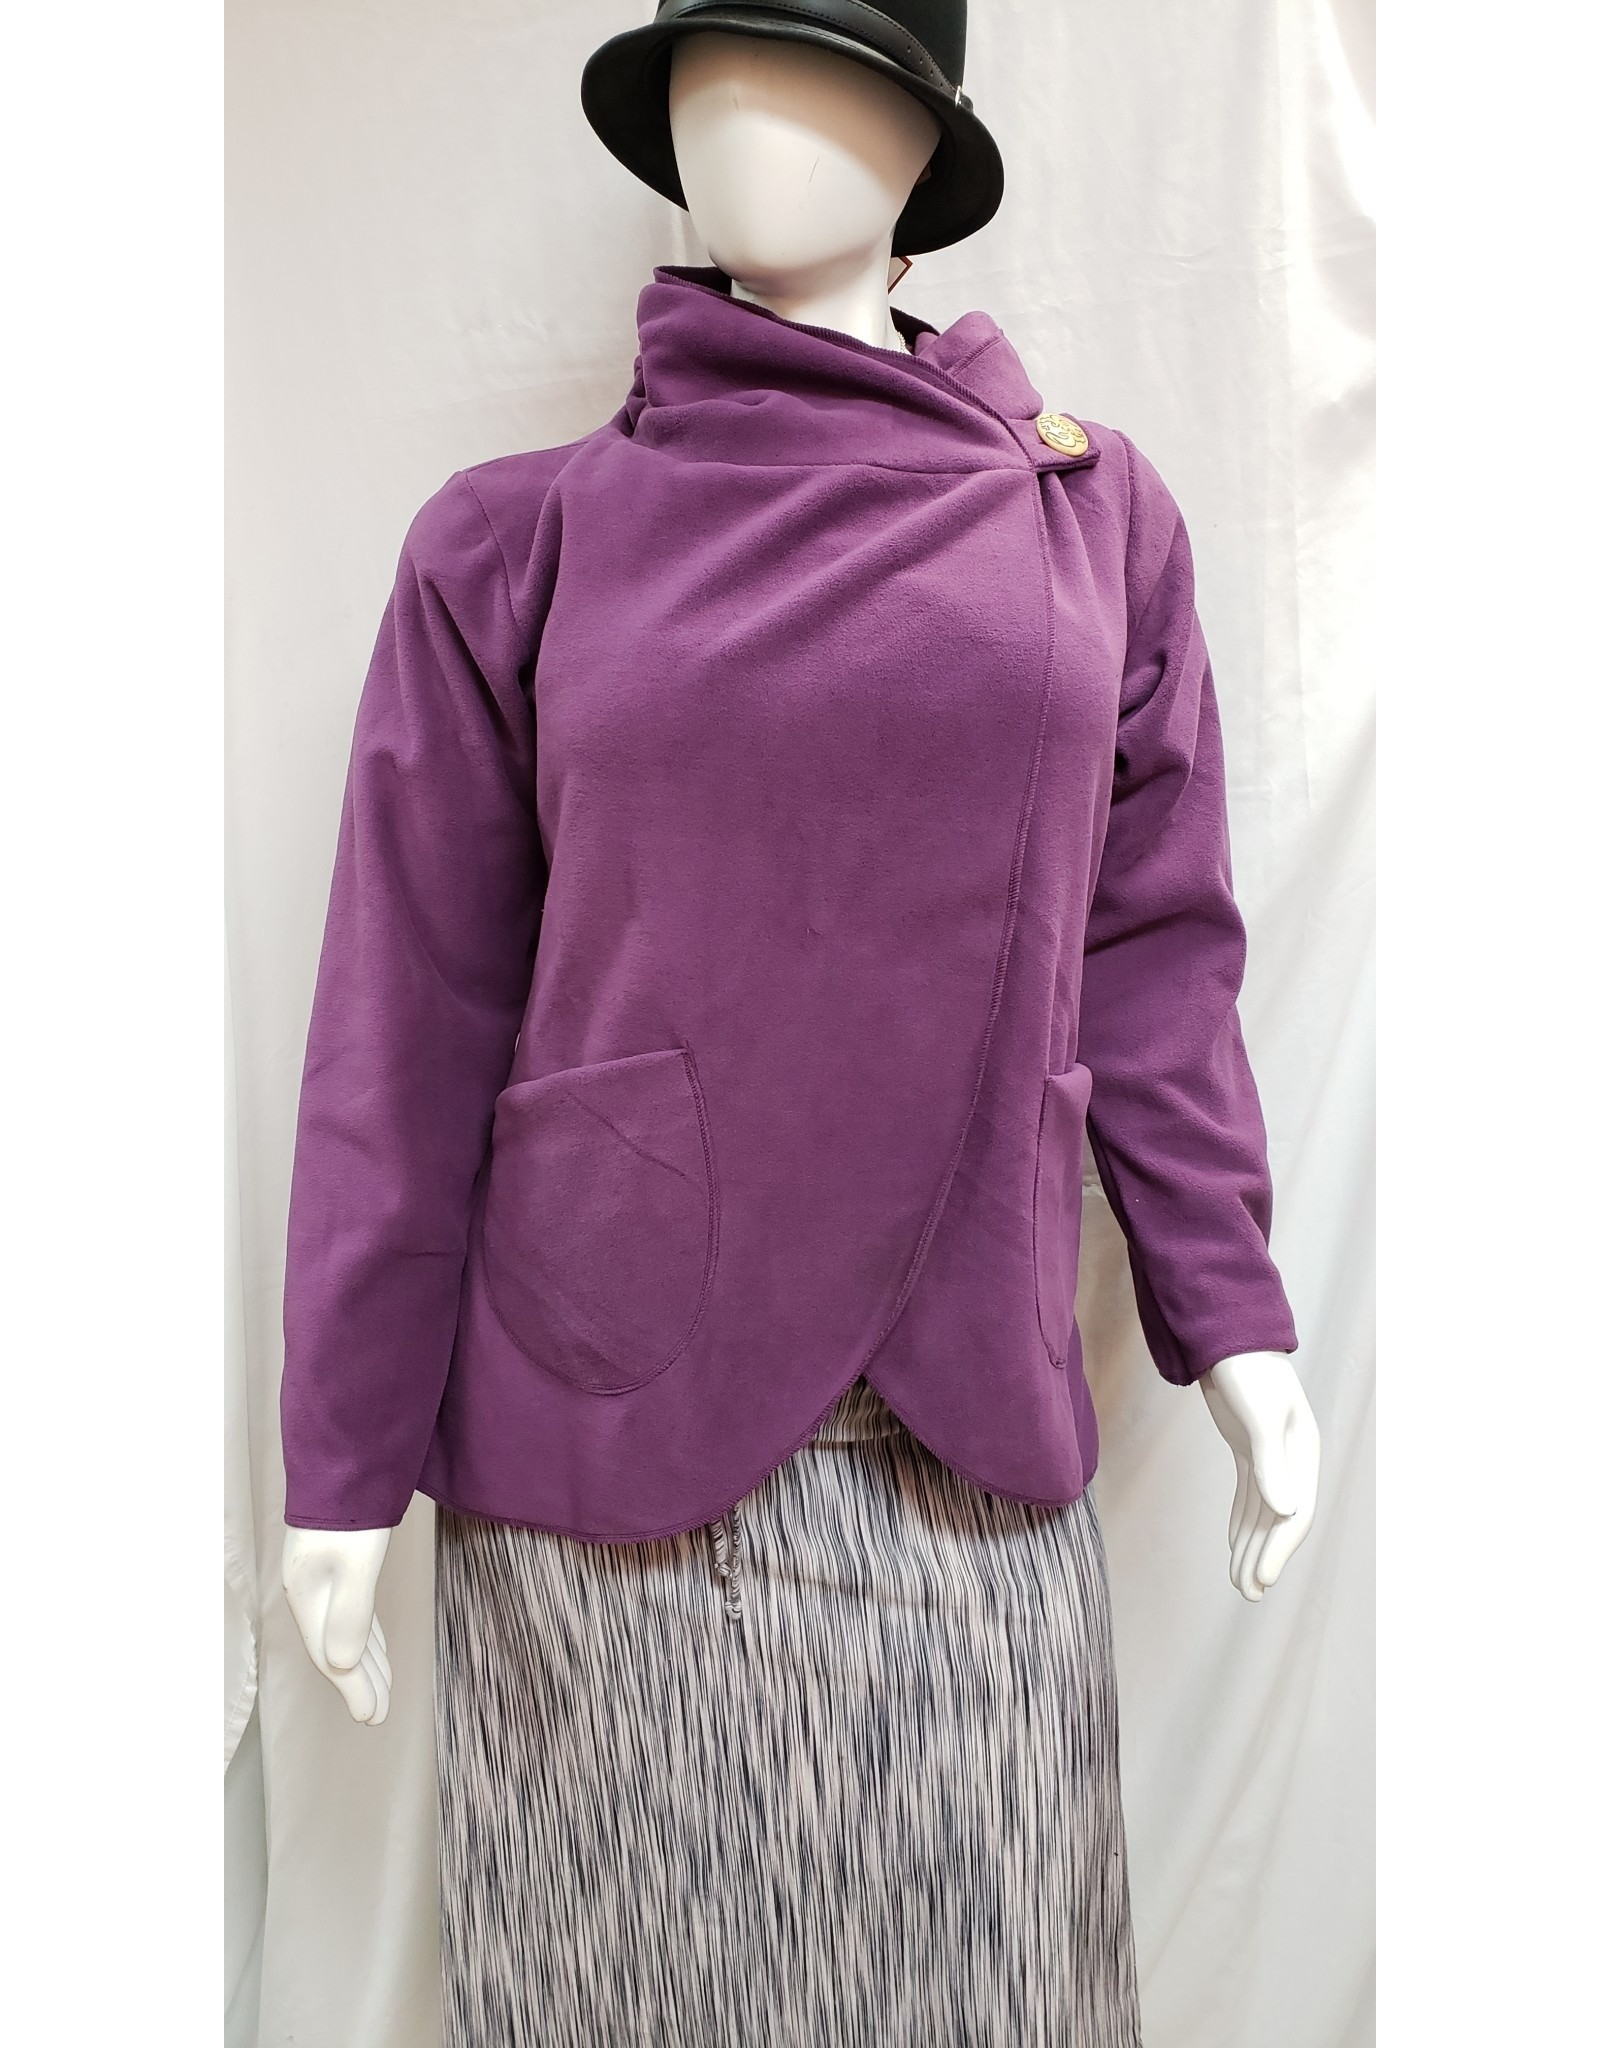 Country Fleece Jacket - Plum - Large